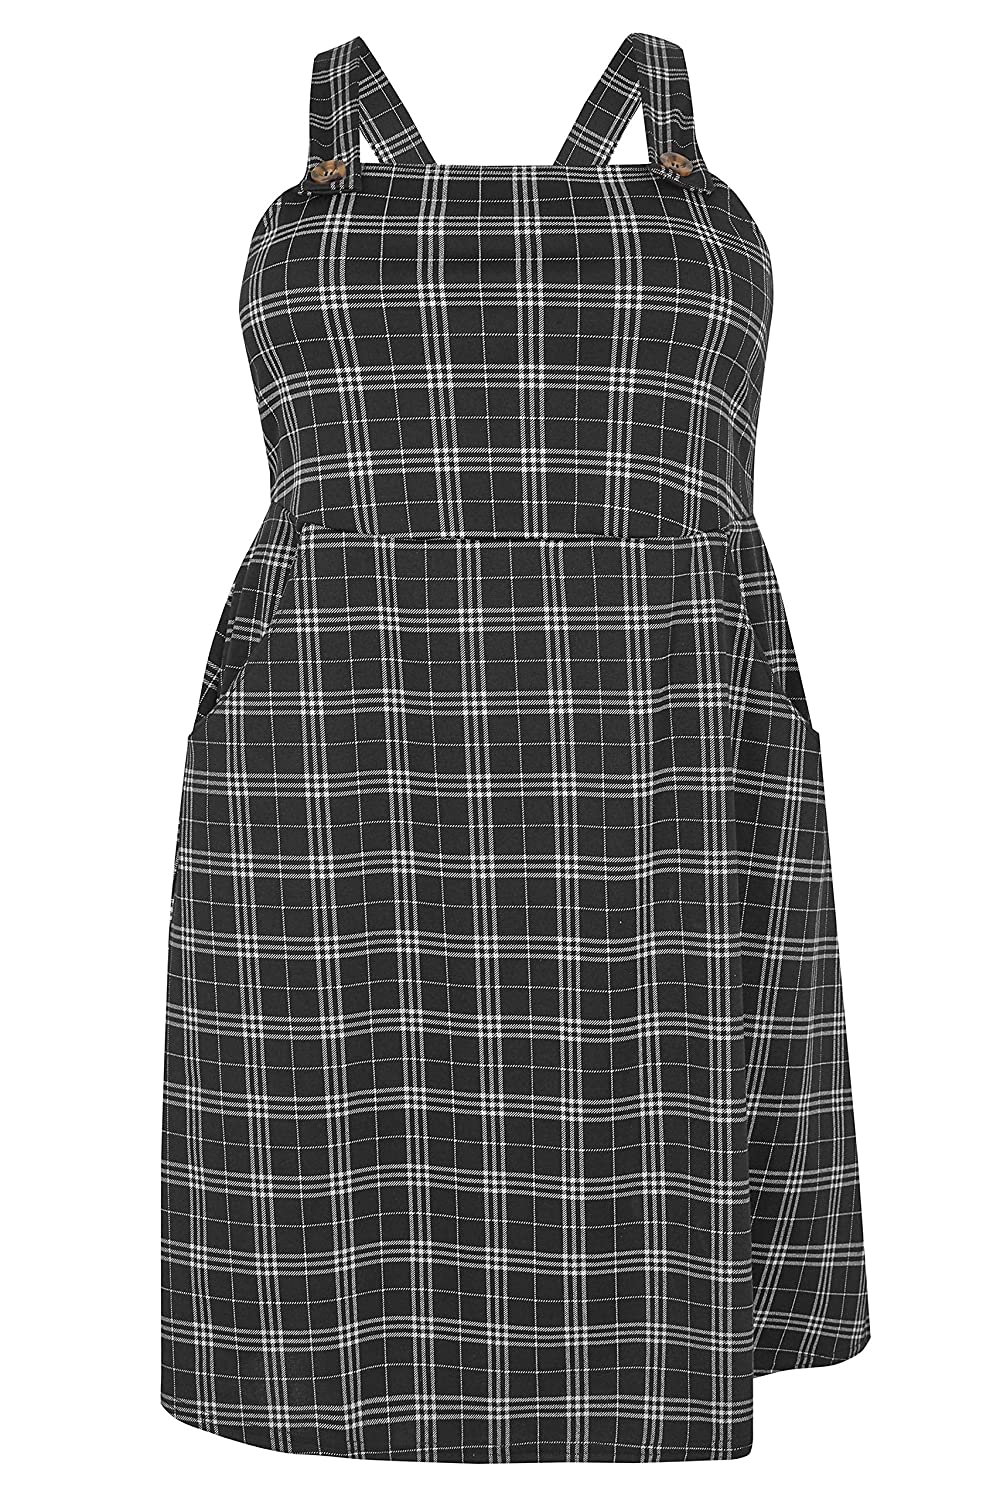 eff529d3c56 Yours Clothing Women s Plus Size Checked Button Pinafore Dress   Amazon.co.uk  Clothing